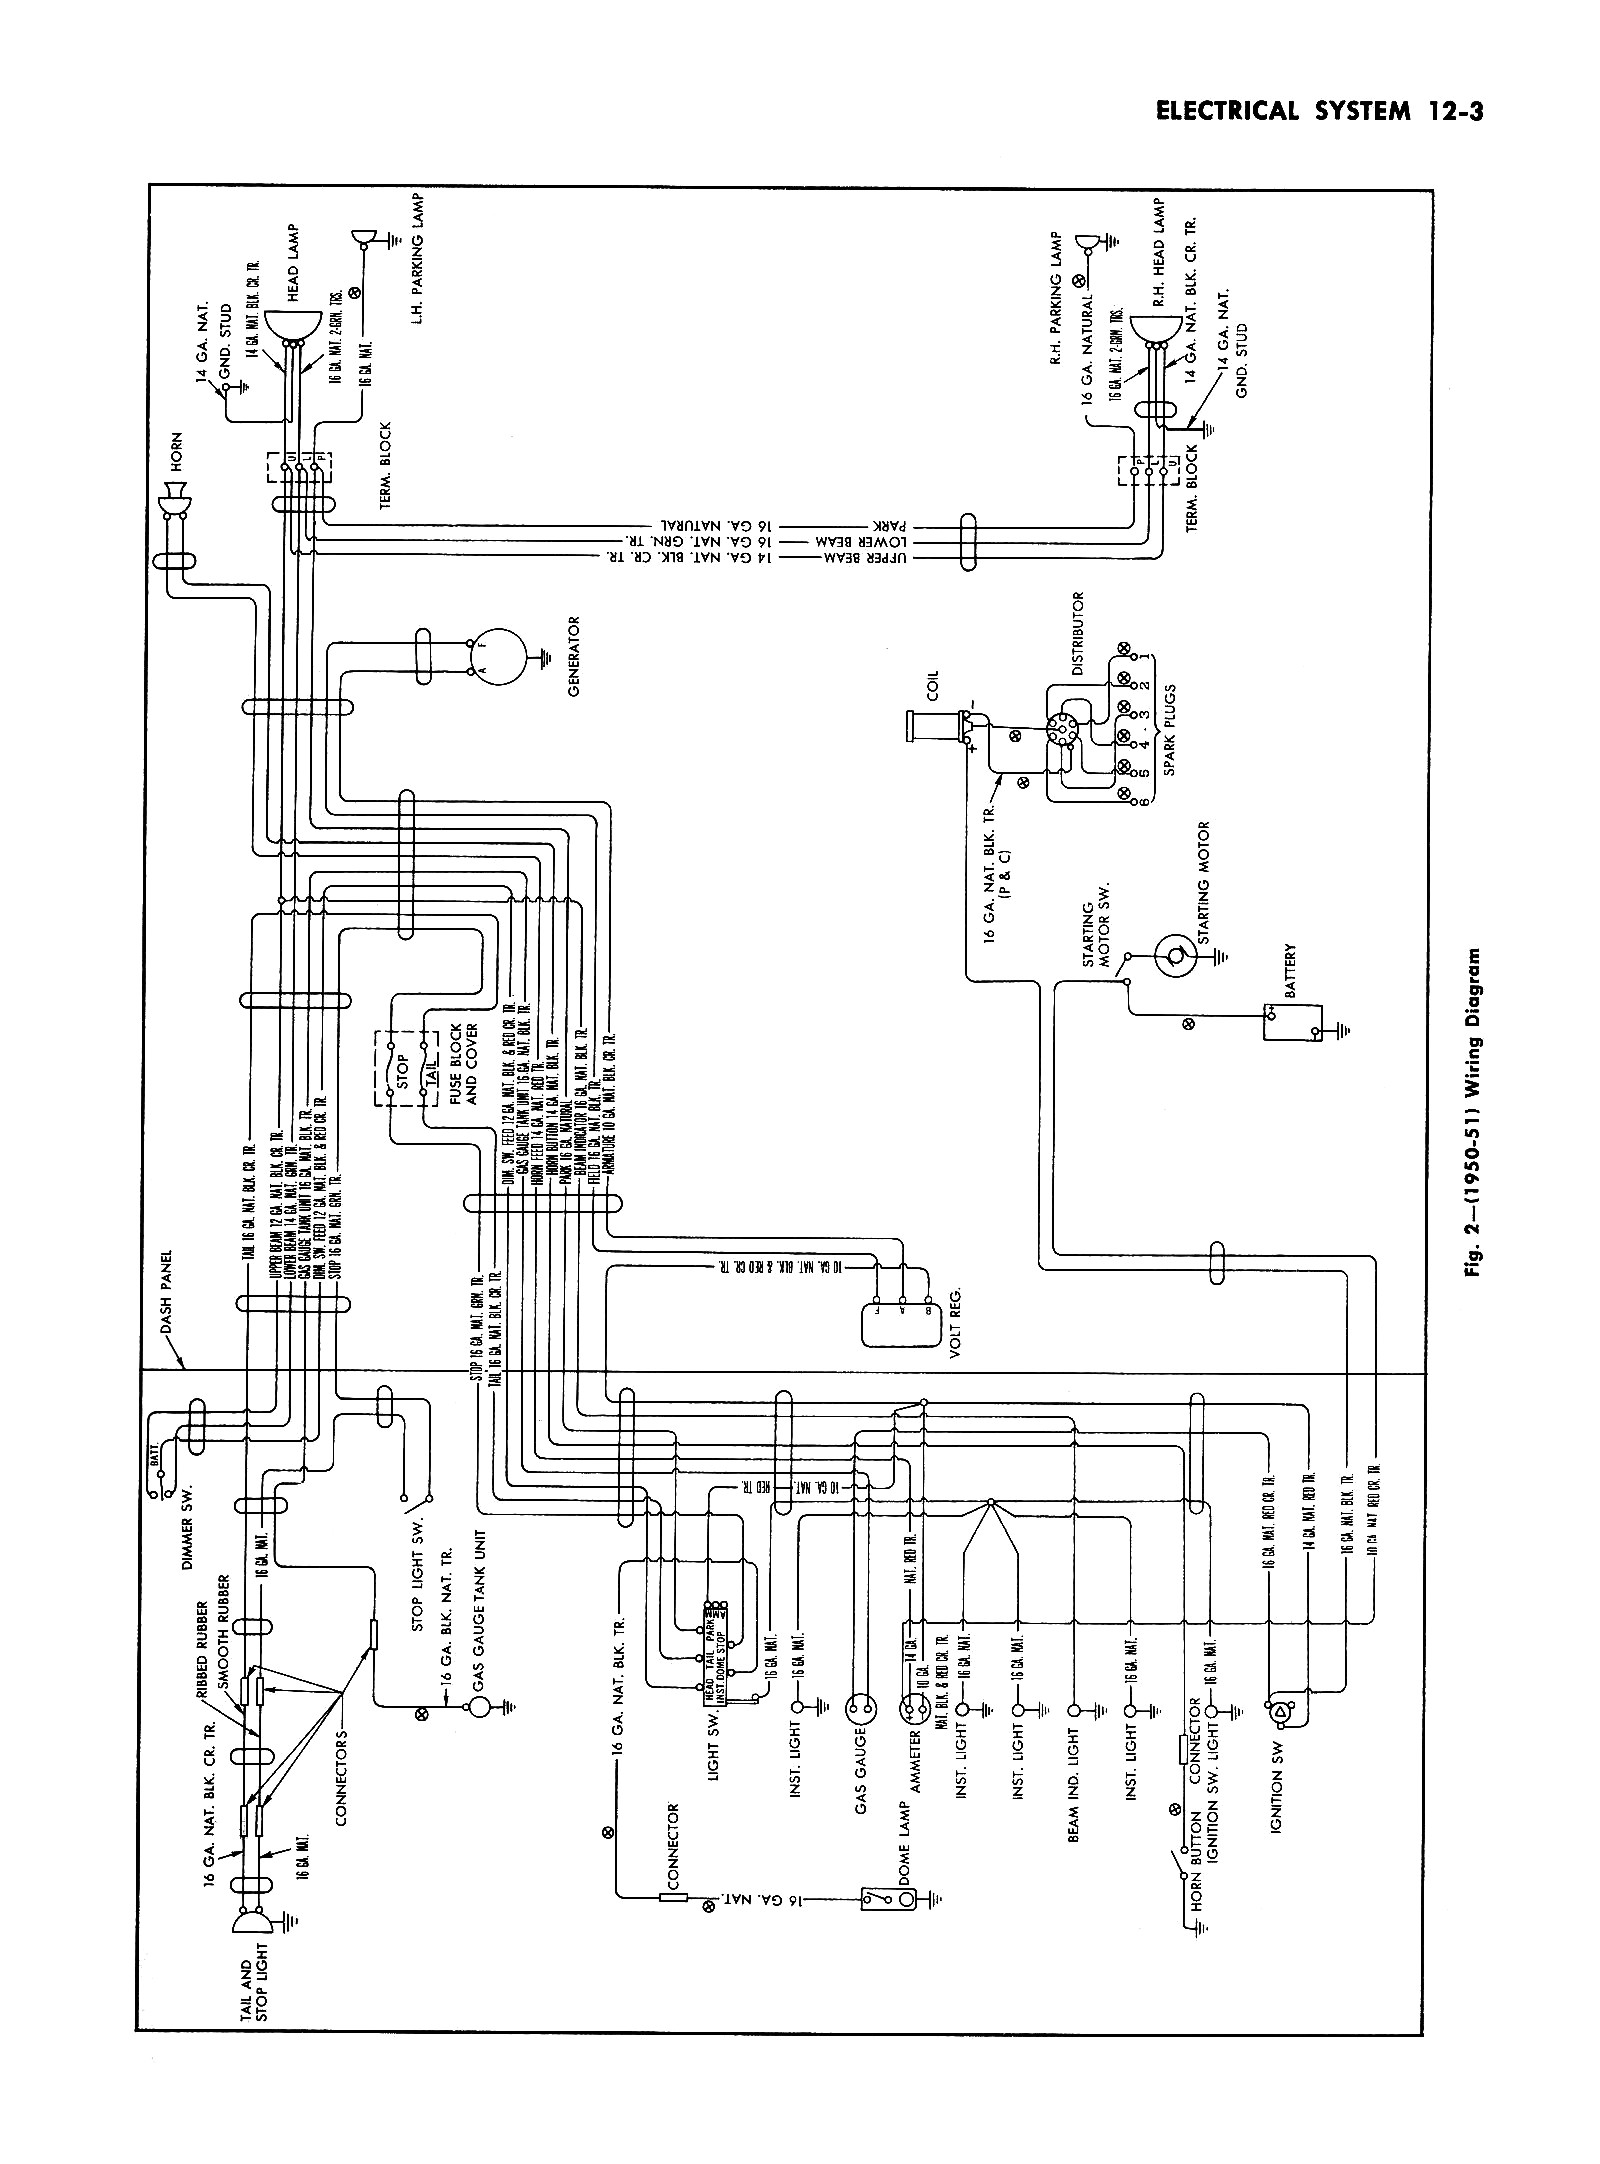 50car1?resized665%2C899 morris minor wiring diagram efcaviation com morris minor wiring diagram pdf at eliteediting.co